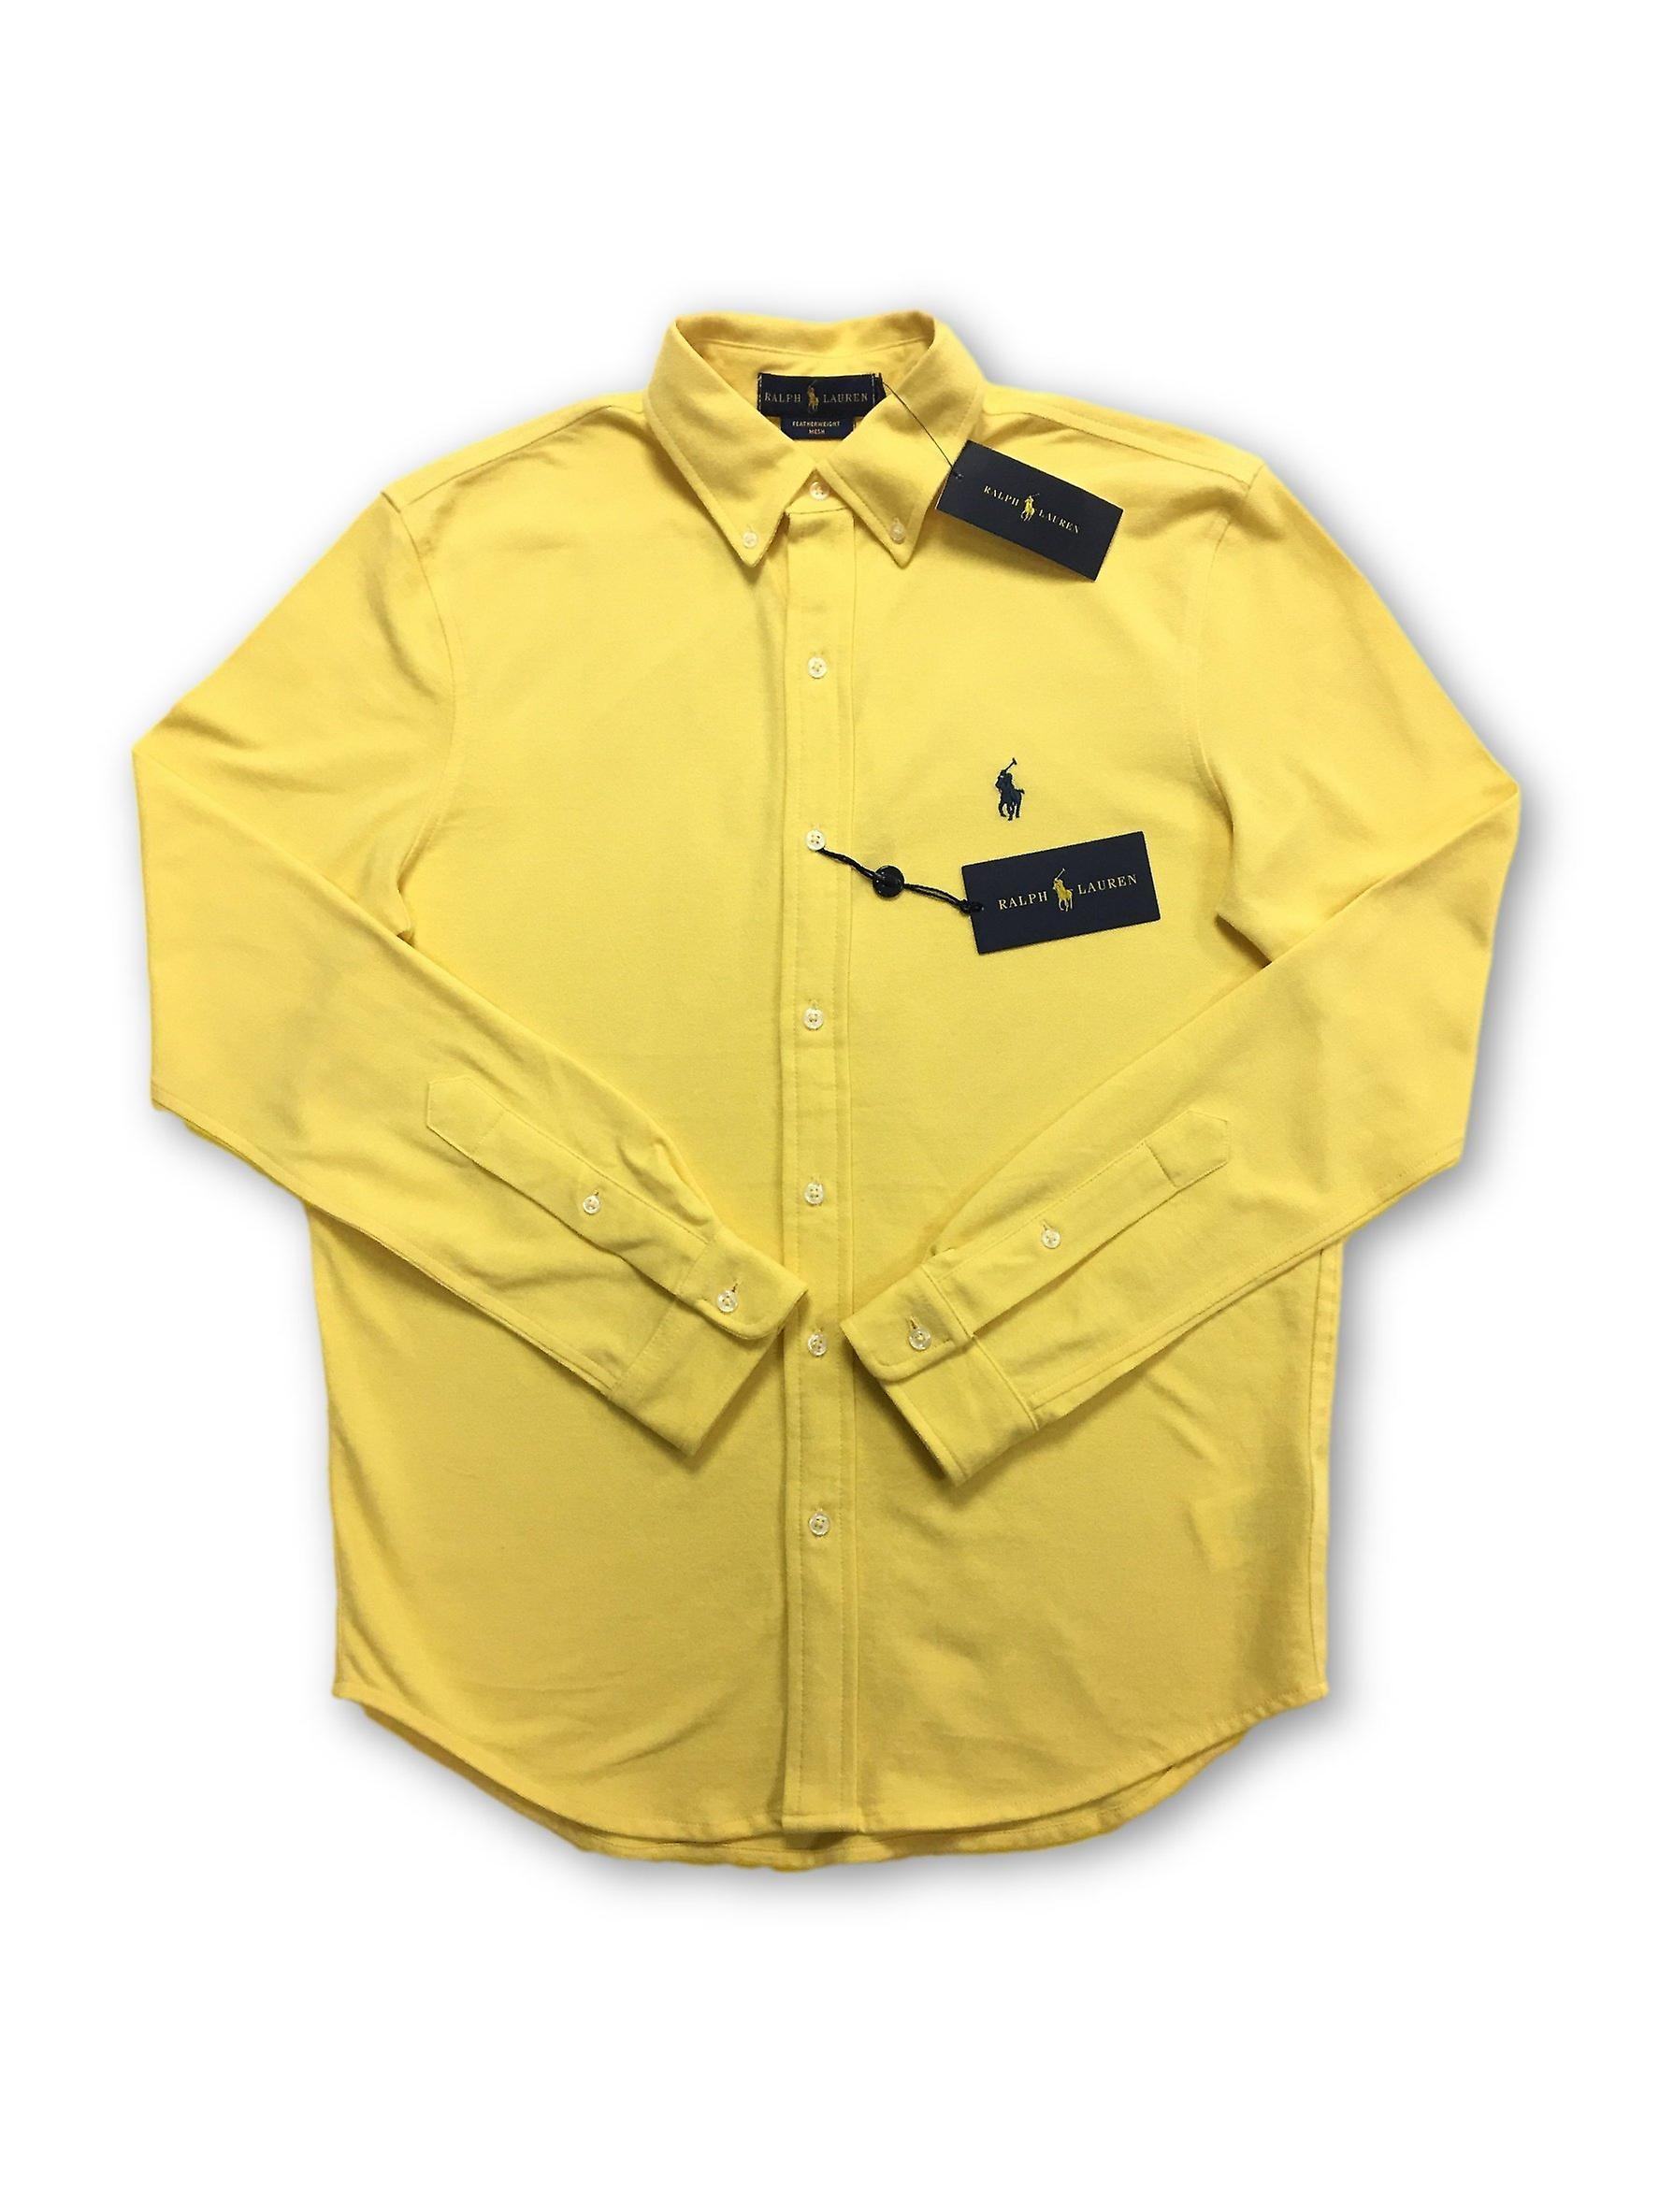 Ralph Lauren shirt in yellow